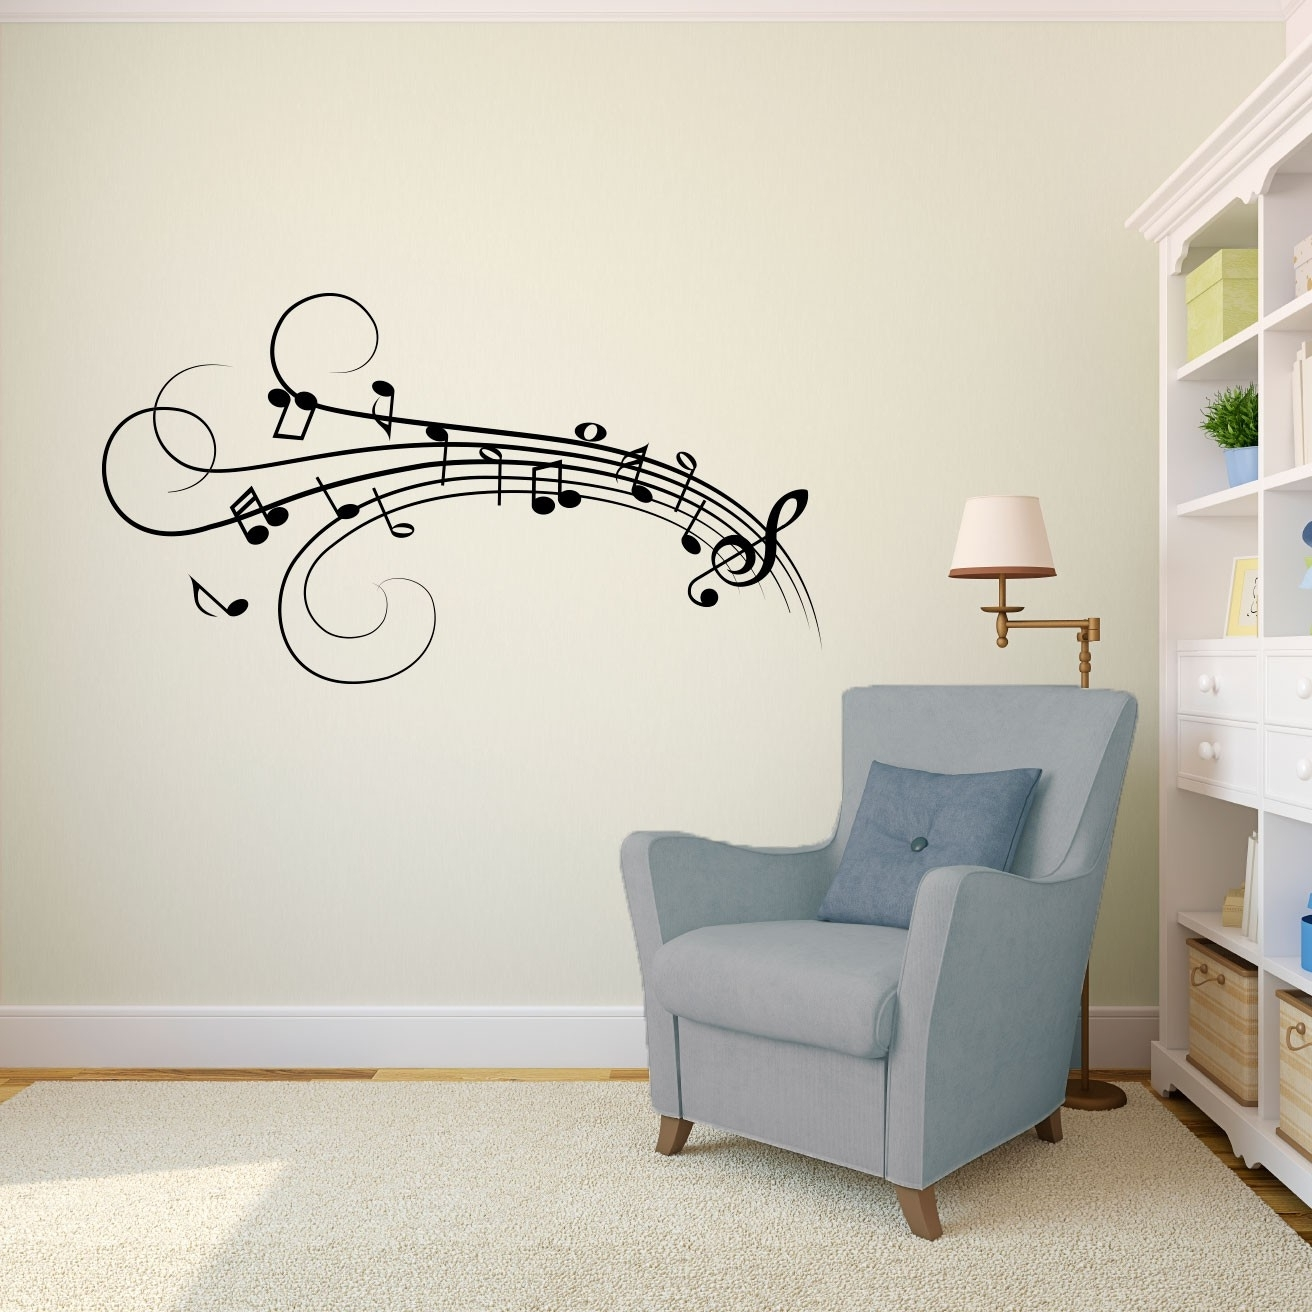 Music Note Wall Art Decor For Well Known Wall Art Decor Ideas: Great Stunning Music Note Wall Art Design (View 4 of 15)